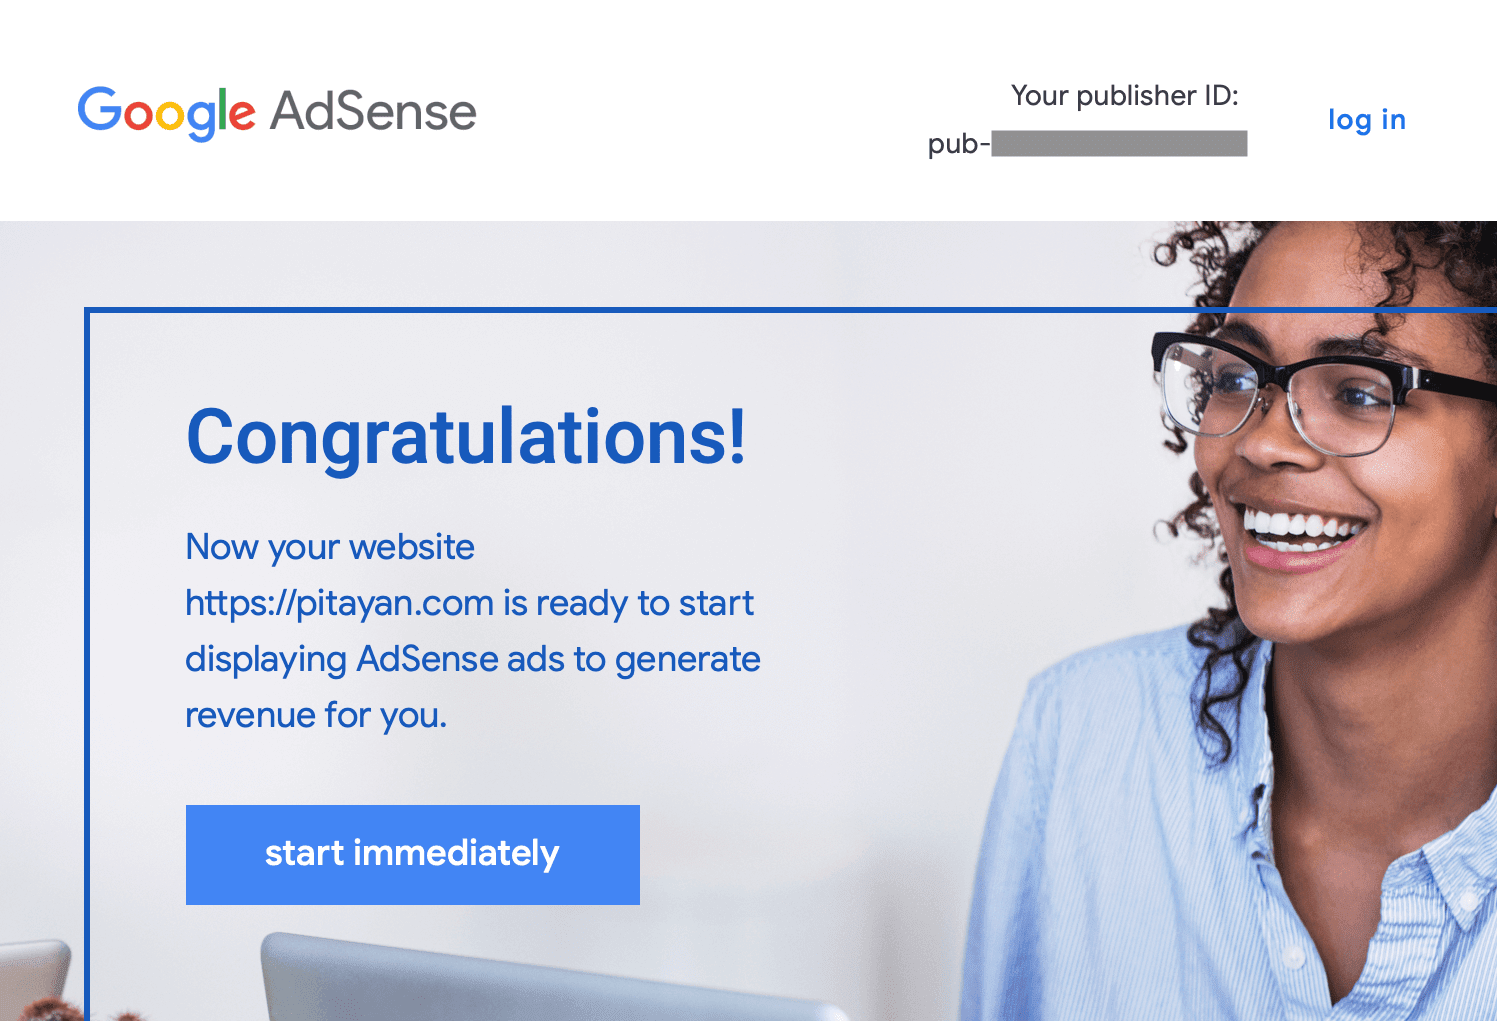 images/adsense_approval.png